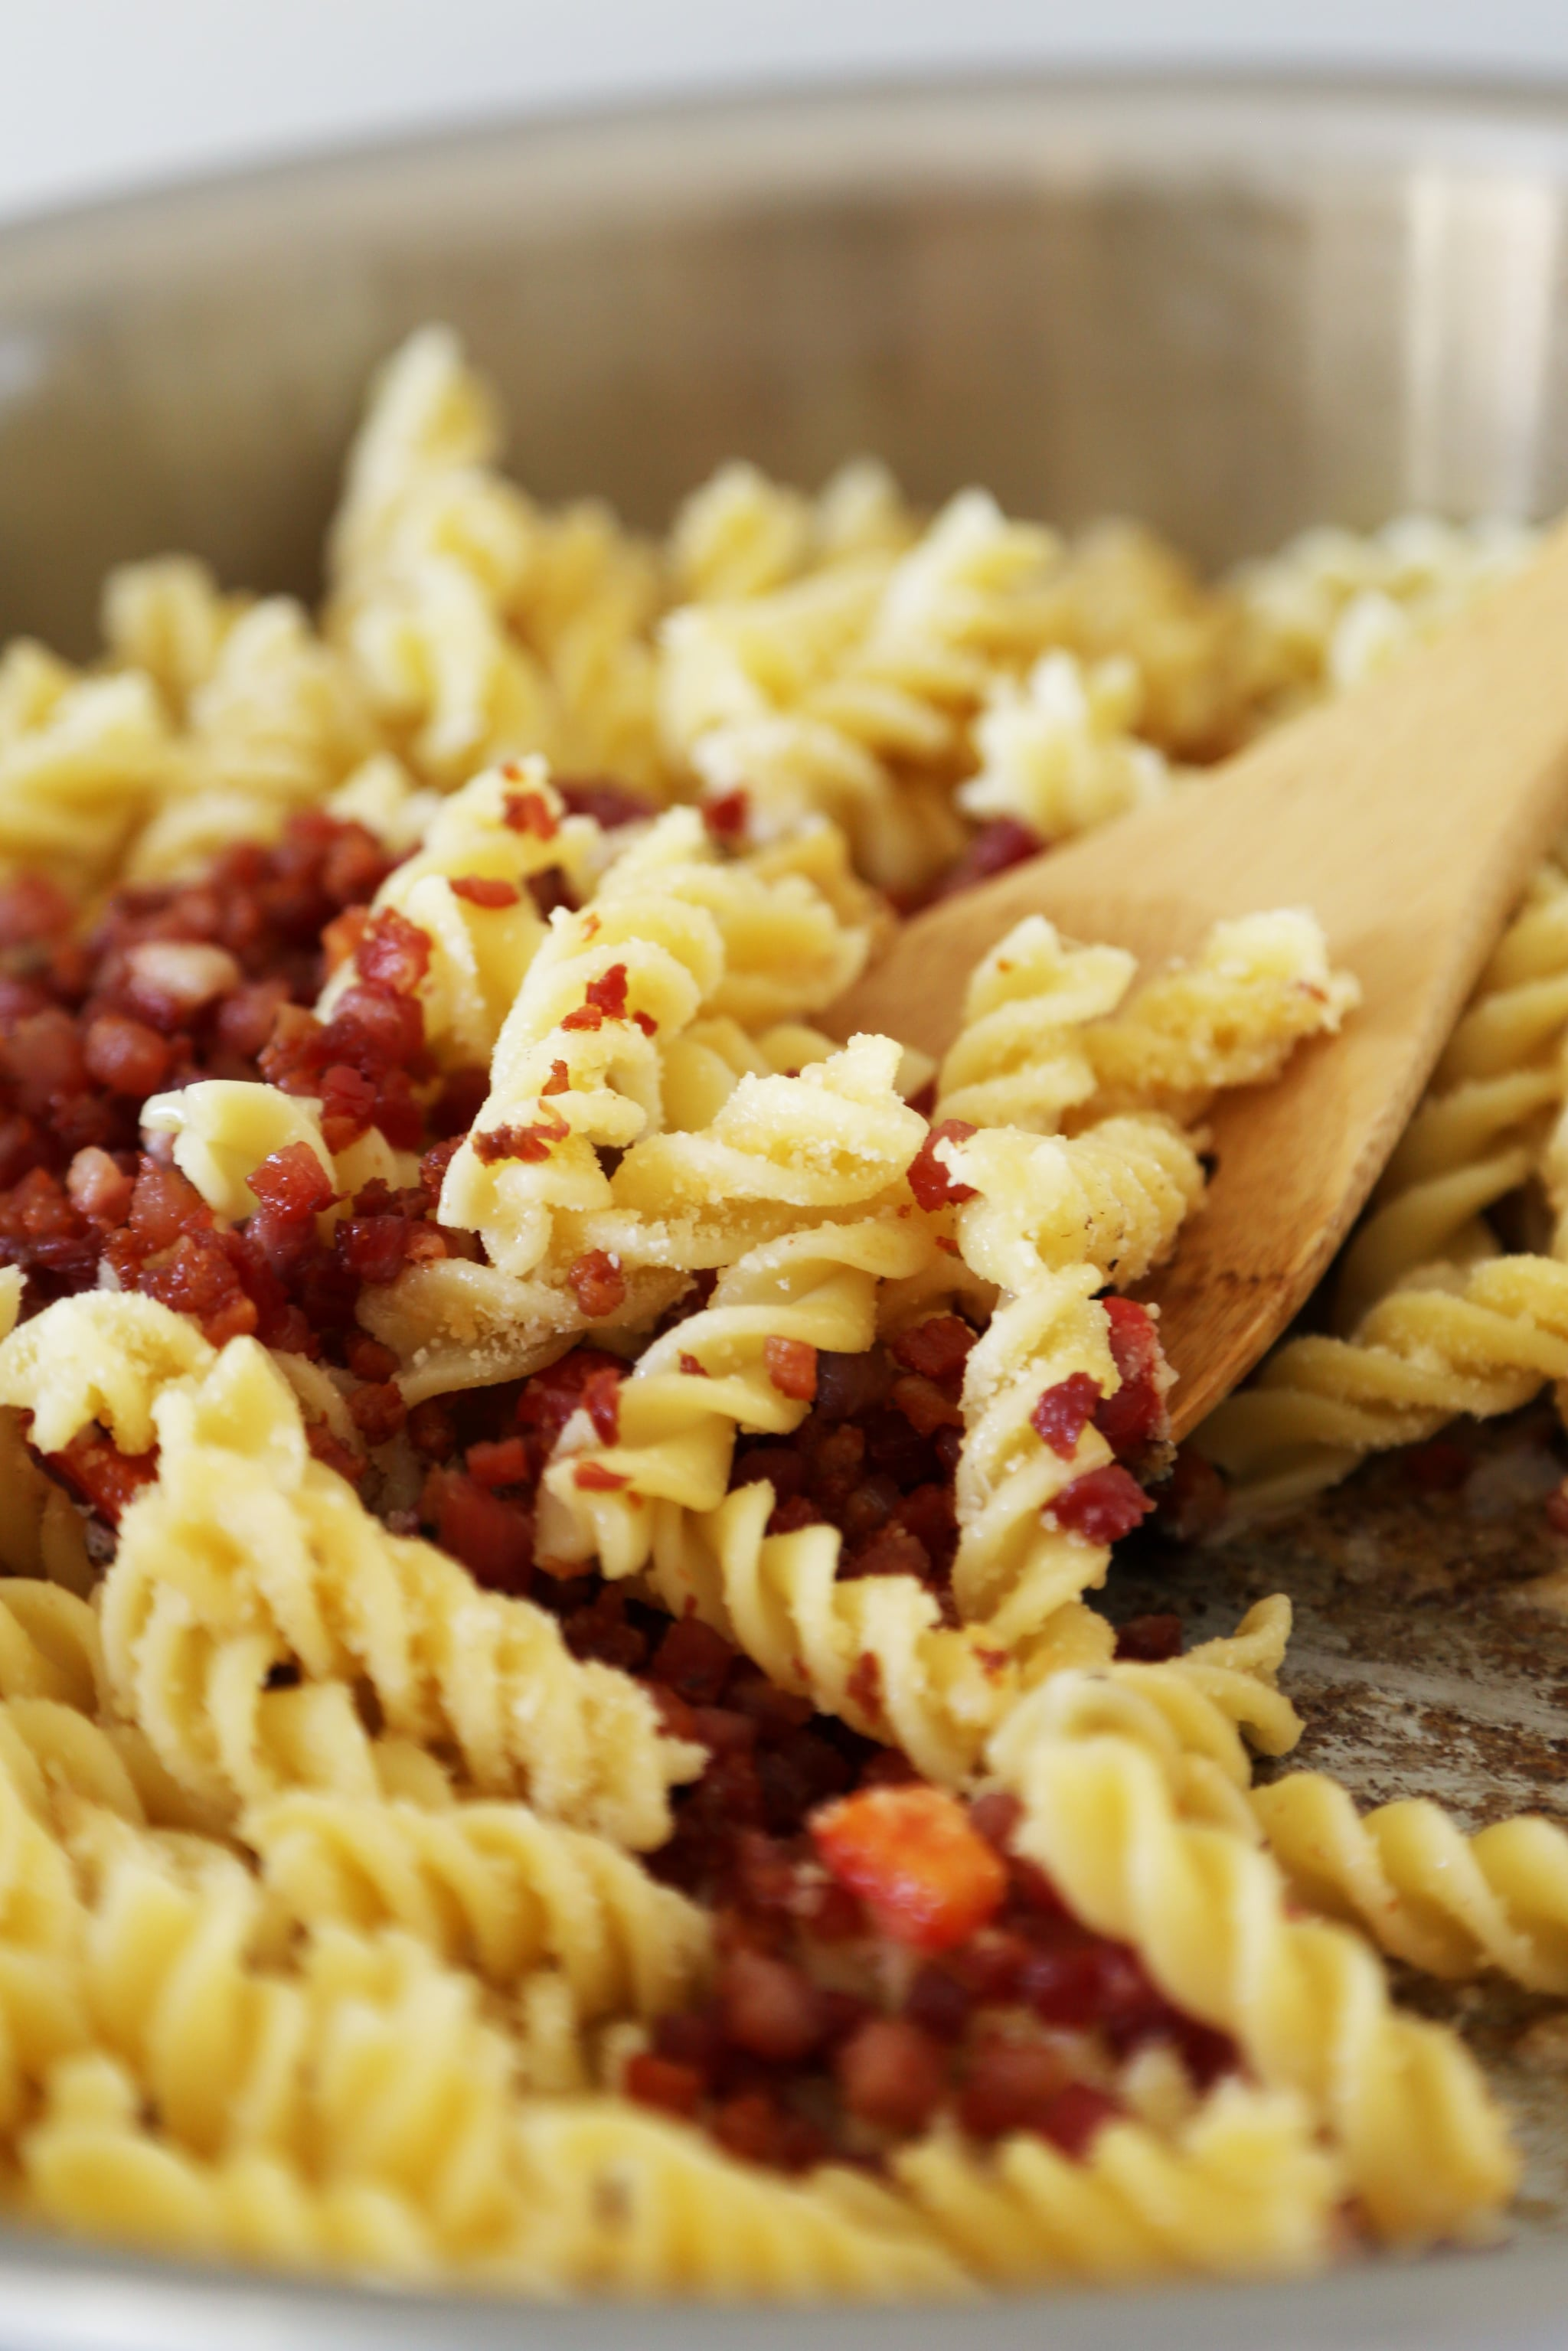 PopsugarFoodAyesha CurryAyesha Curry's Five-Ingredient Pasta RecipePretend You Are Stephen Curry and Make His Favorite 5-Ingredient Pasta Recipe September 24, 2016 by Erin Cullum318 Shares Chat with us on Facebook Messenger. Learn what's trending across POPSUGAR.Image Source: POPSUGAR Photography / Anna Monette RobertsThis five-ingredient pasta recipe from Ayesha Curry's new cookbook, The Seasoned Life, will instantly become part of your weekly dinner rotation, as it has for the Food Network host and her husband, Stephen Curry. The NBA star's favorite recipe of Ayesha's is chicken parmesan, which Ayesha admits you won't find in the book, but this pasta is the next best thing. With just five ingredients (egg noodles, pancetta, red bell pepper, parmesan, and basil), you can have a family-friendly dinner on the table in half an hour or less. The star of this dish is the diced pancetta, so don't skimp on it. When it crisps up, it almost tastes like bacon bits and provides the perfect textural contrast to the pas - 웹